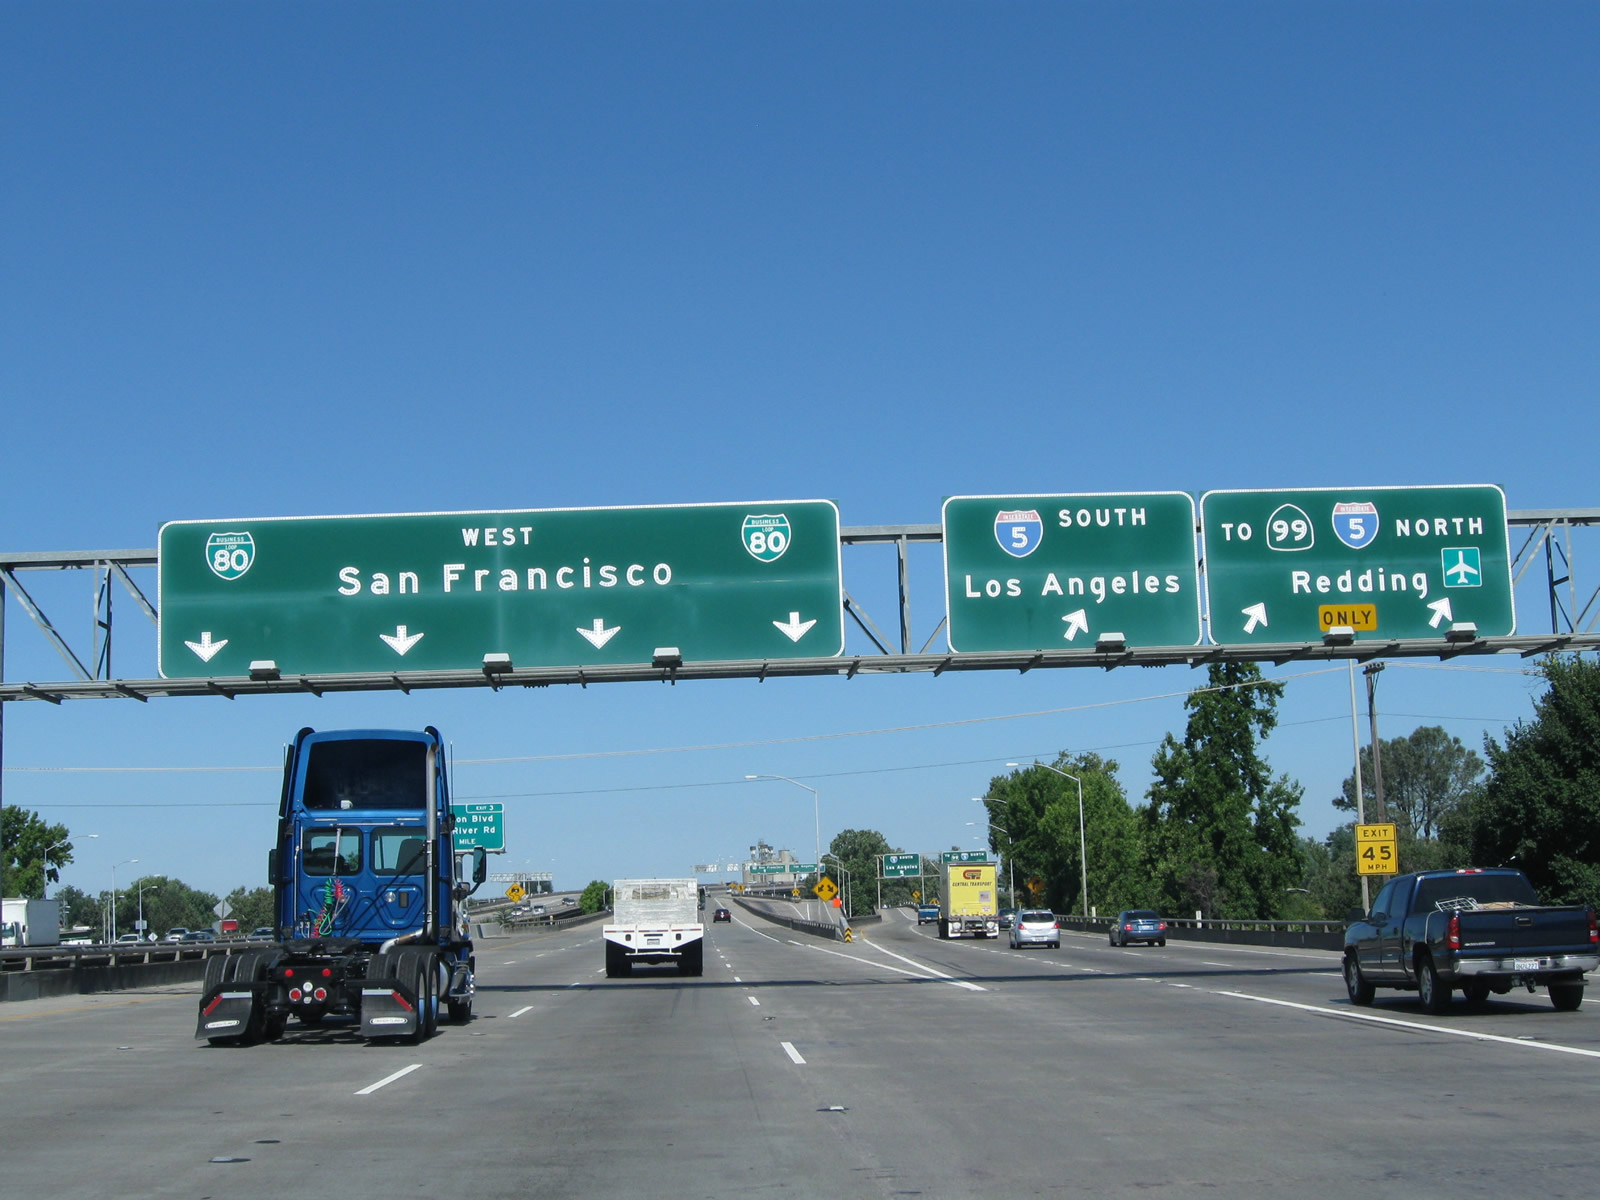 Road signs in California for I-5 South